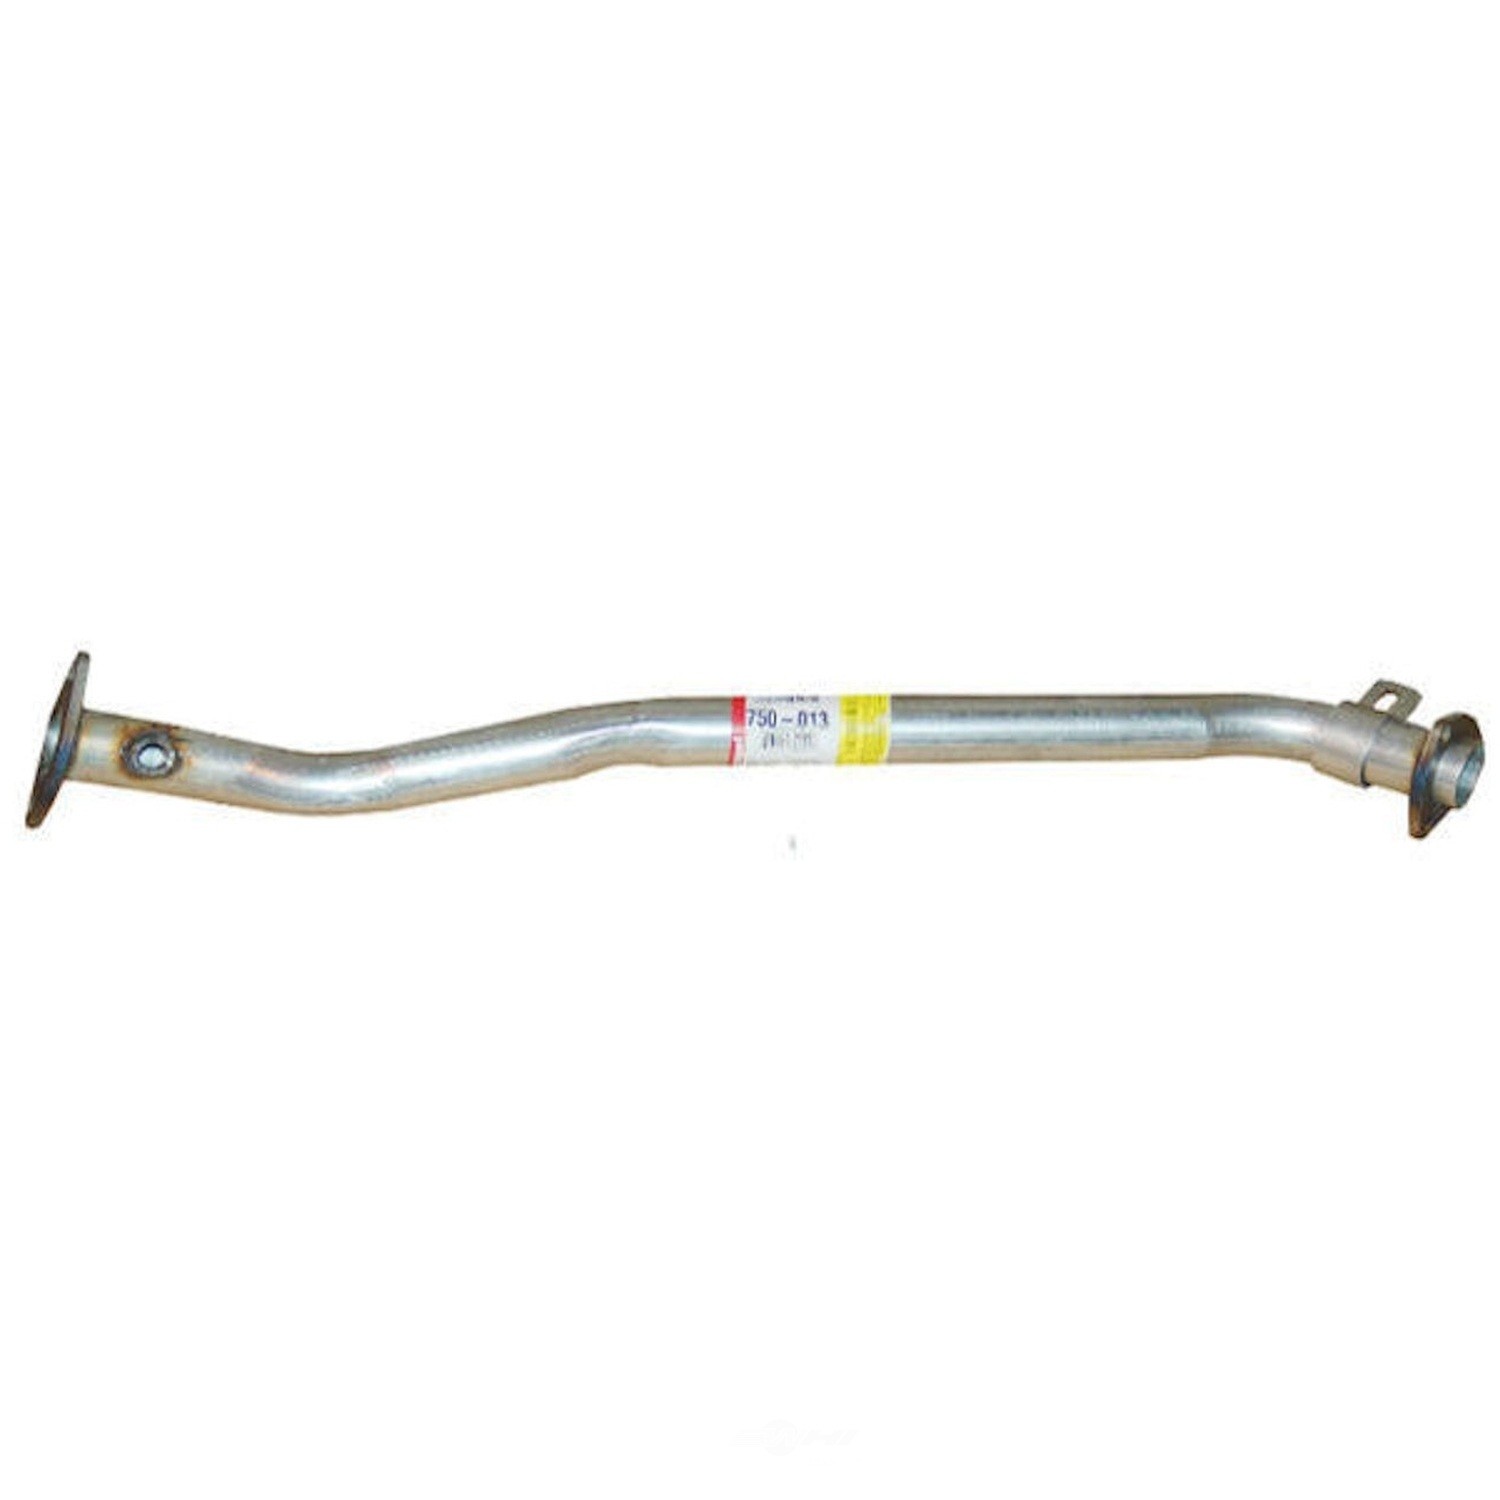 BREXHAUST EXHAUST - BRExhaust Replacement Exhaust Pipe (Front) - BSL 750-013